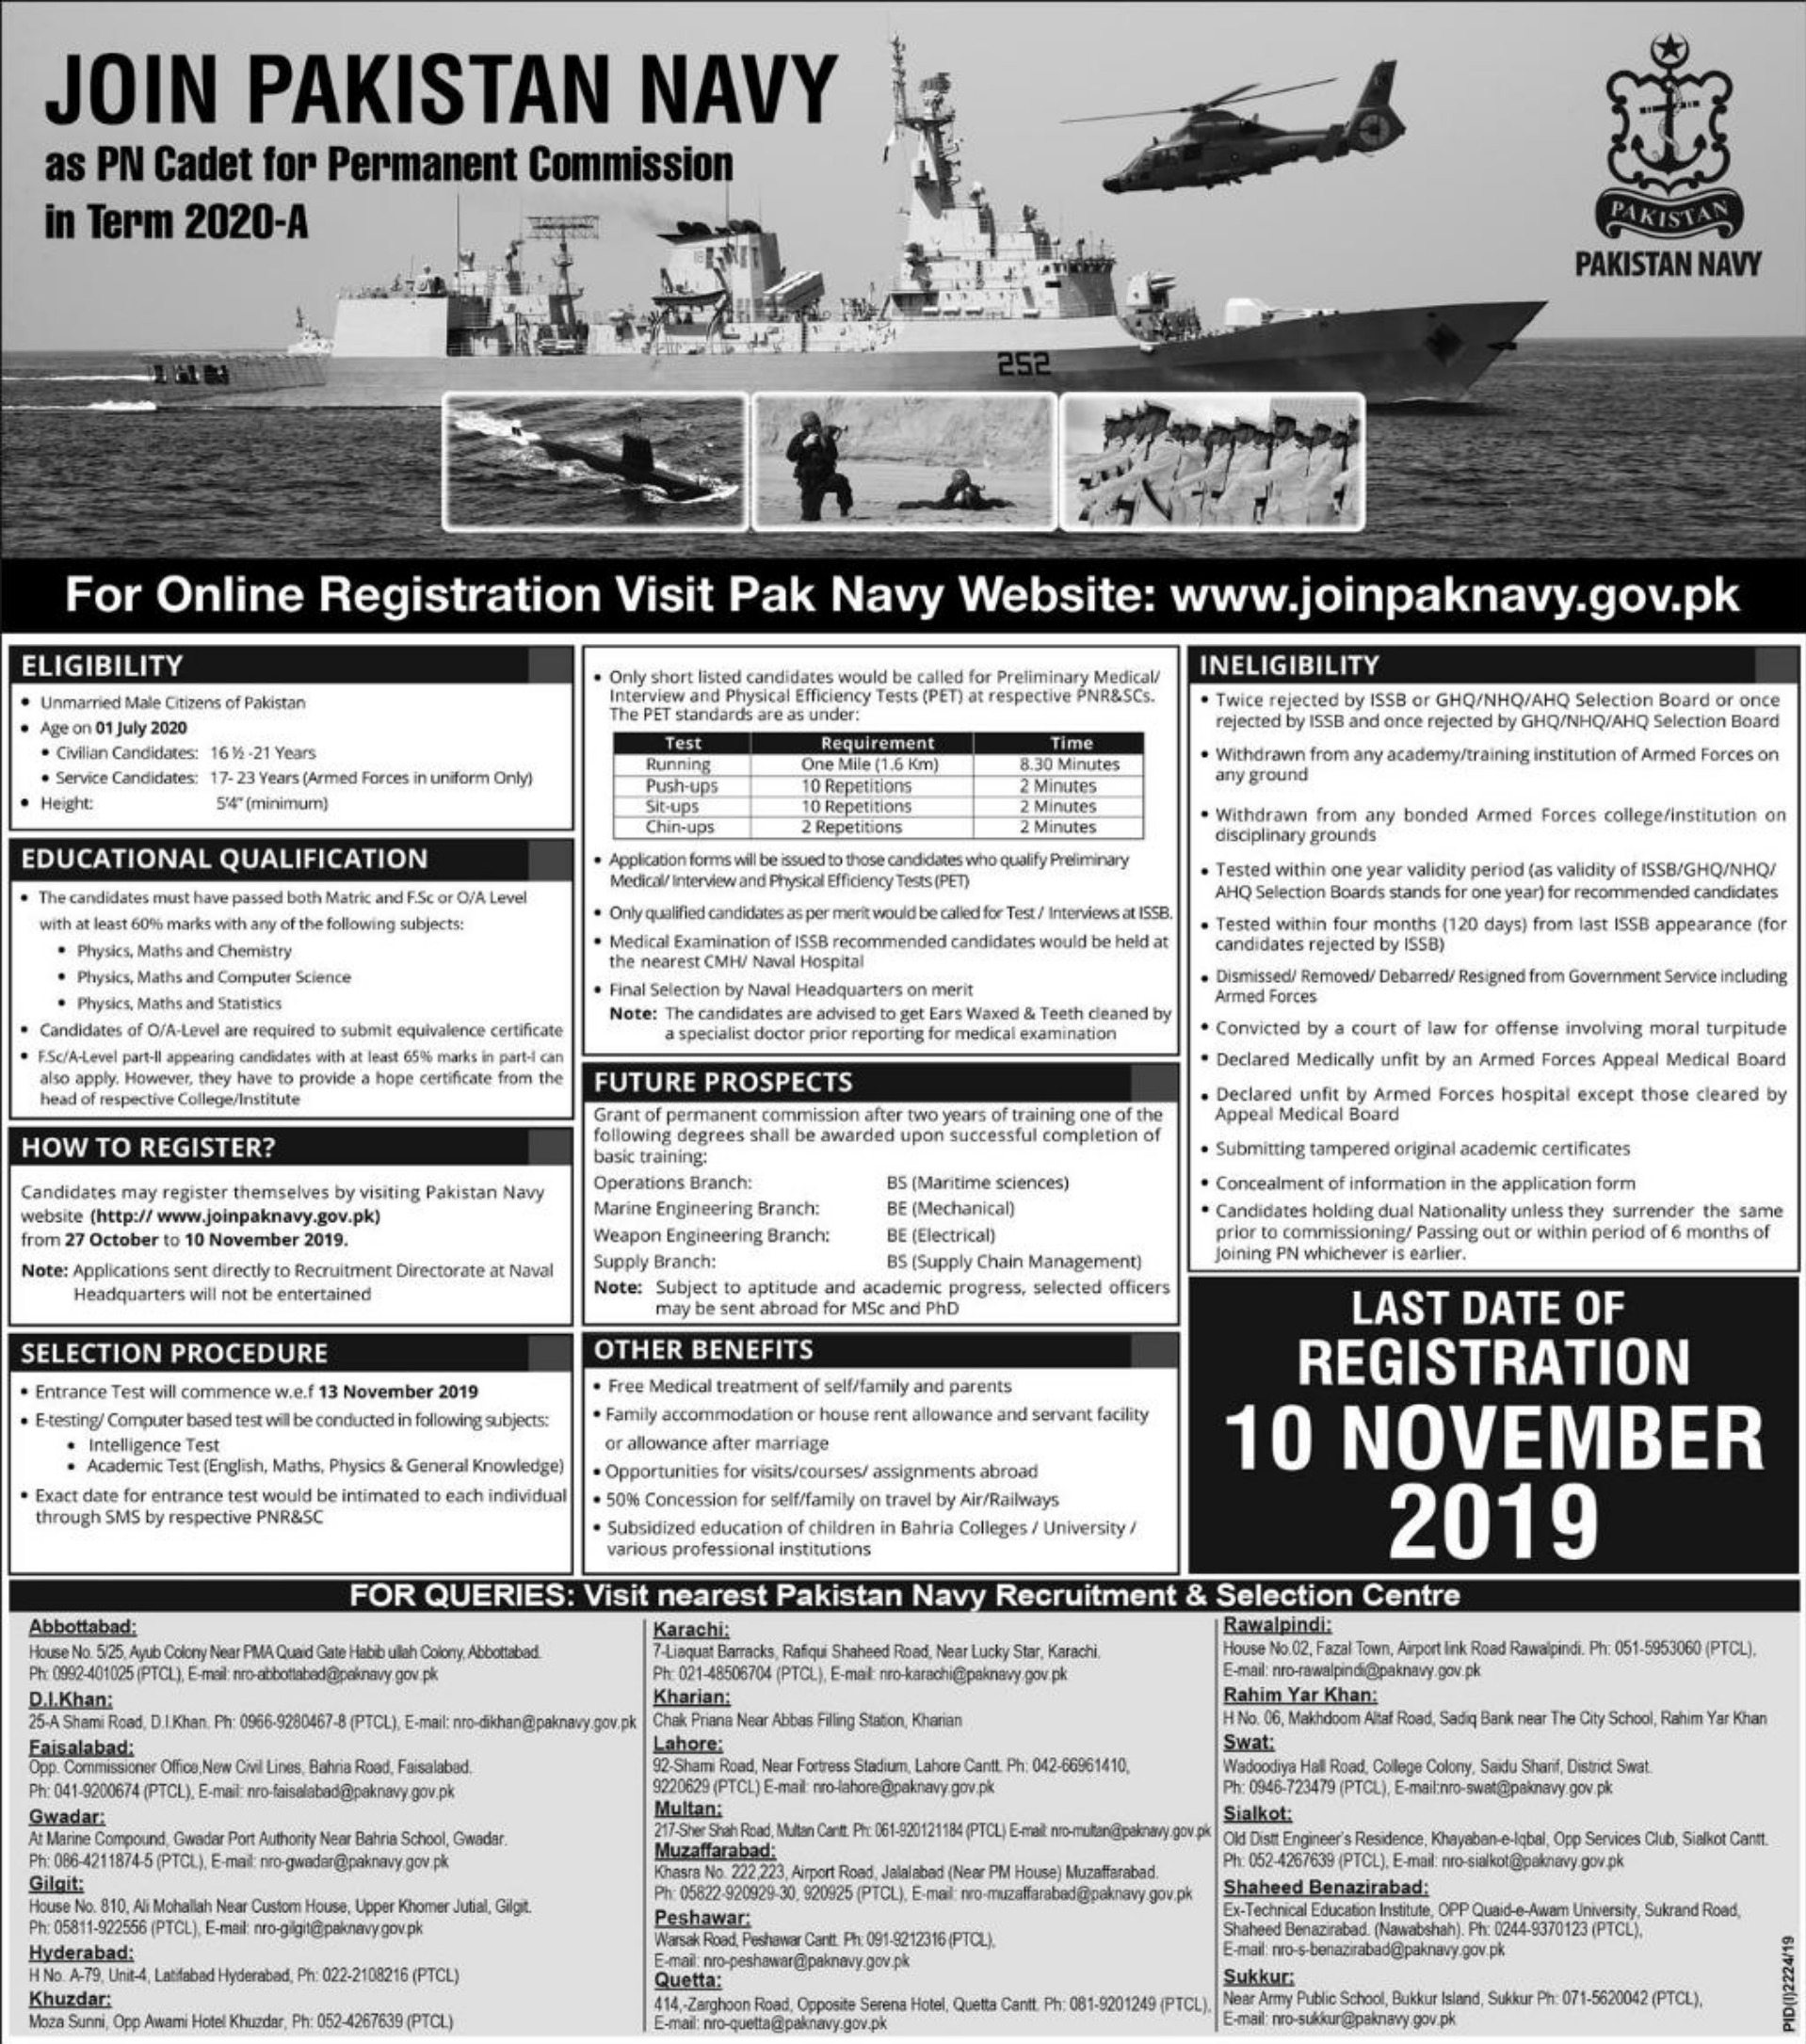 Join Pakistan Navy as PN Cadet for Permanent Commission 2020-A